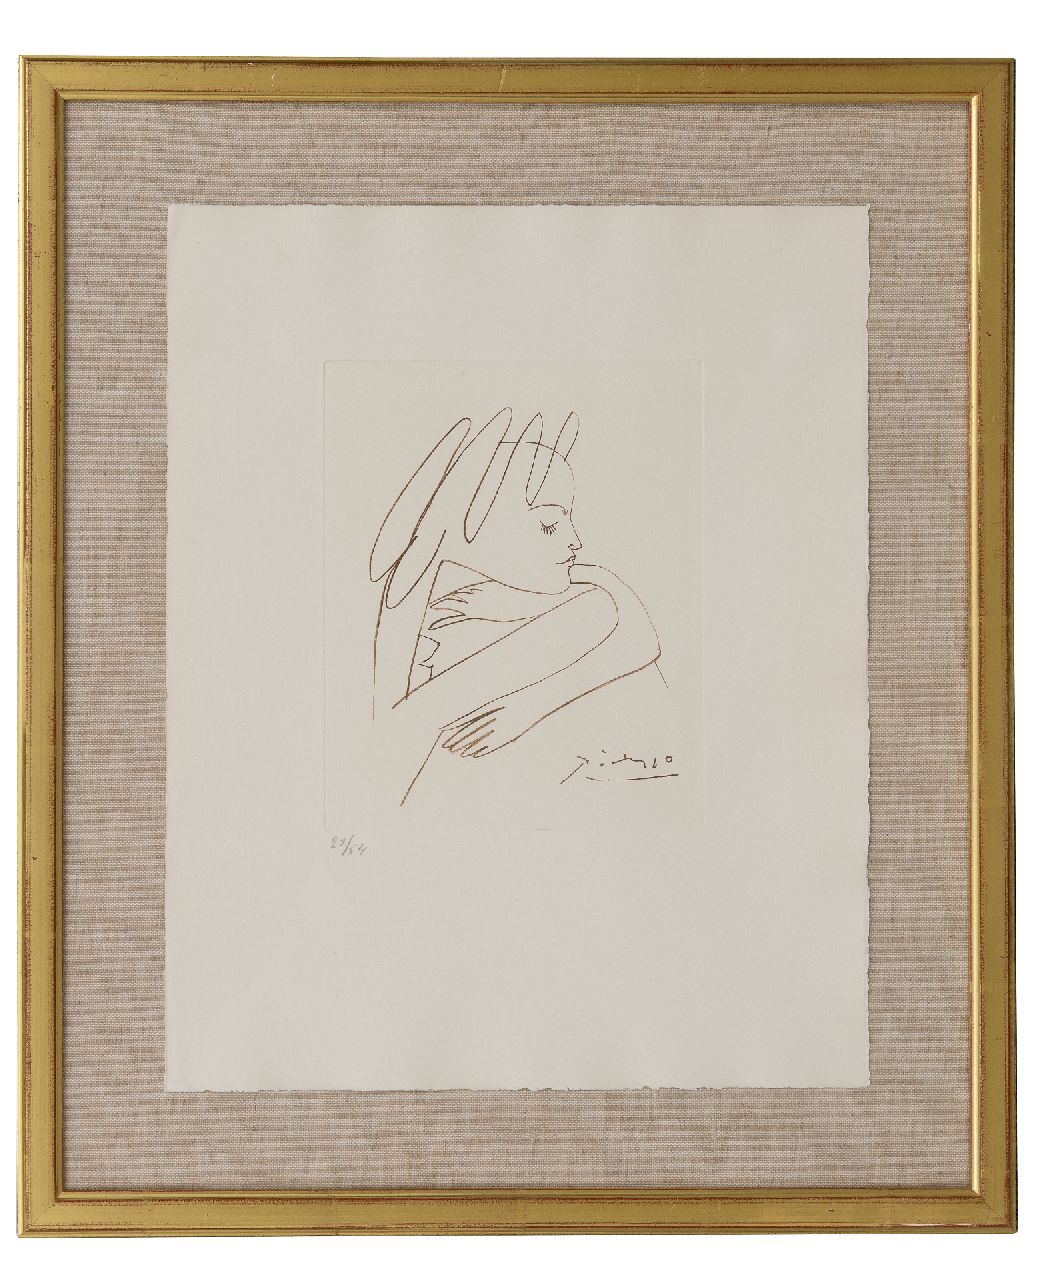 Picasso (Pablo Ruiz y Picasso) P.  | Pablo Picasso (Pablo Ruiz y Picasso) | Prints and Multiples offered for sale | Les cavaliers d'ombre (illustration of  'Les cavaliers d'ombre), etching on paper 22.0 x 17.5 cm, signed l.r. in the plate